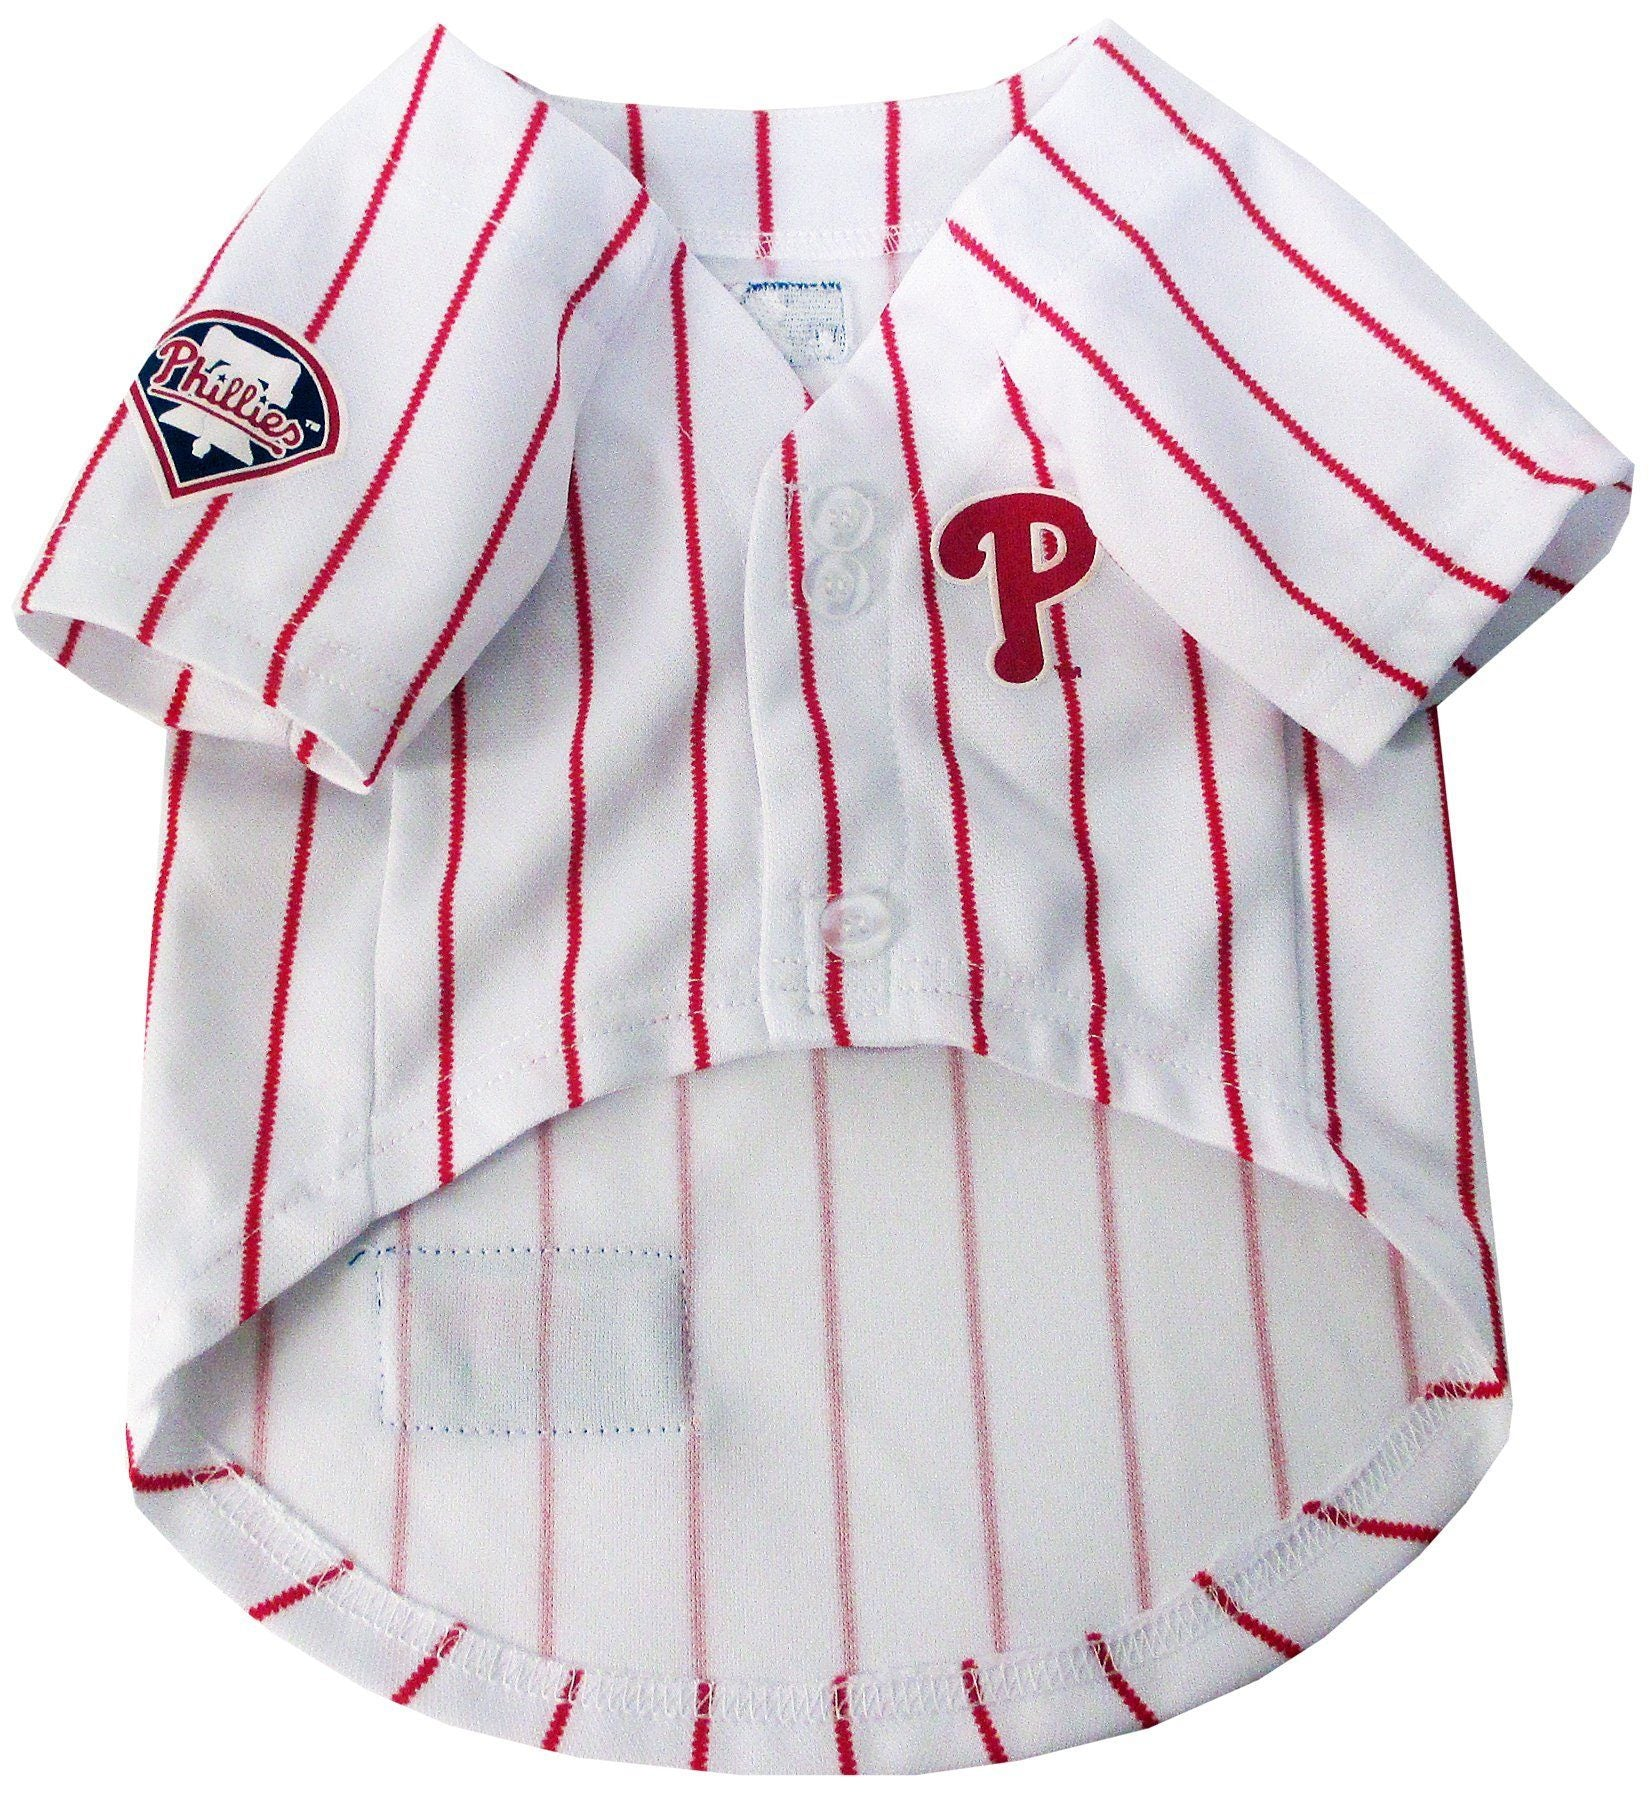 Philadelphia Phillies Puppy Dog Baseball Jersey - Jersey Champs - Custom Basketball, Baseball, Football & Hockey Jerseys